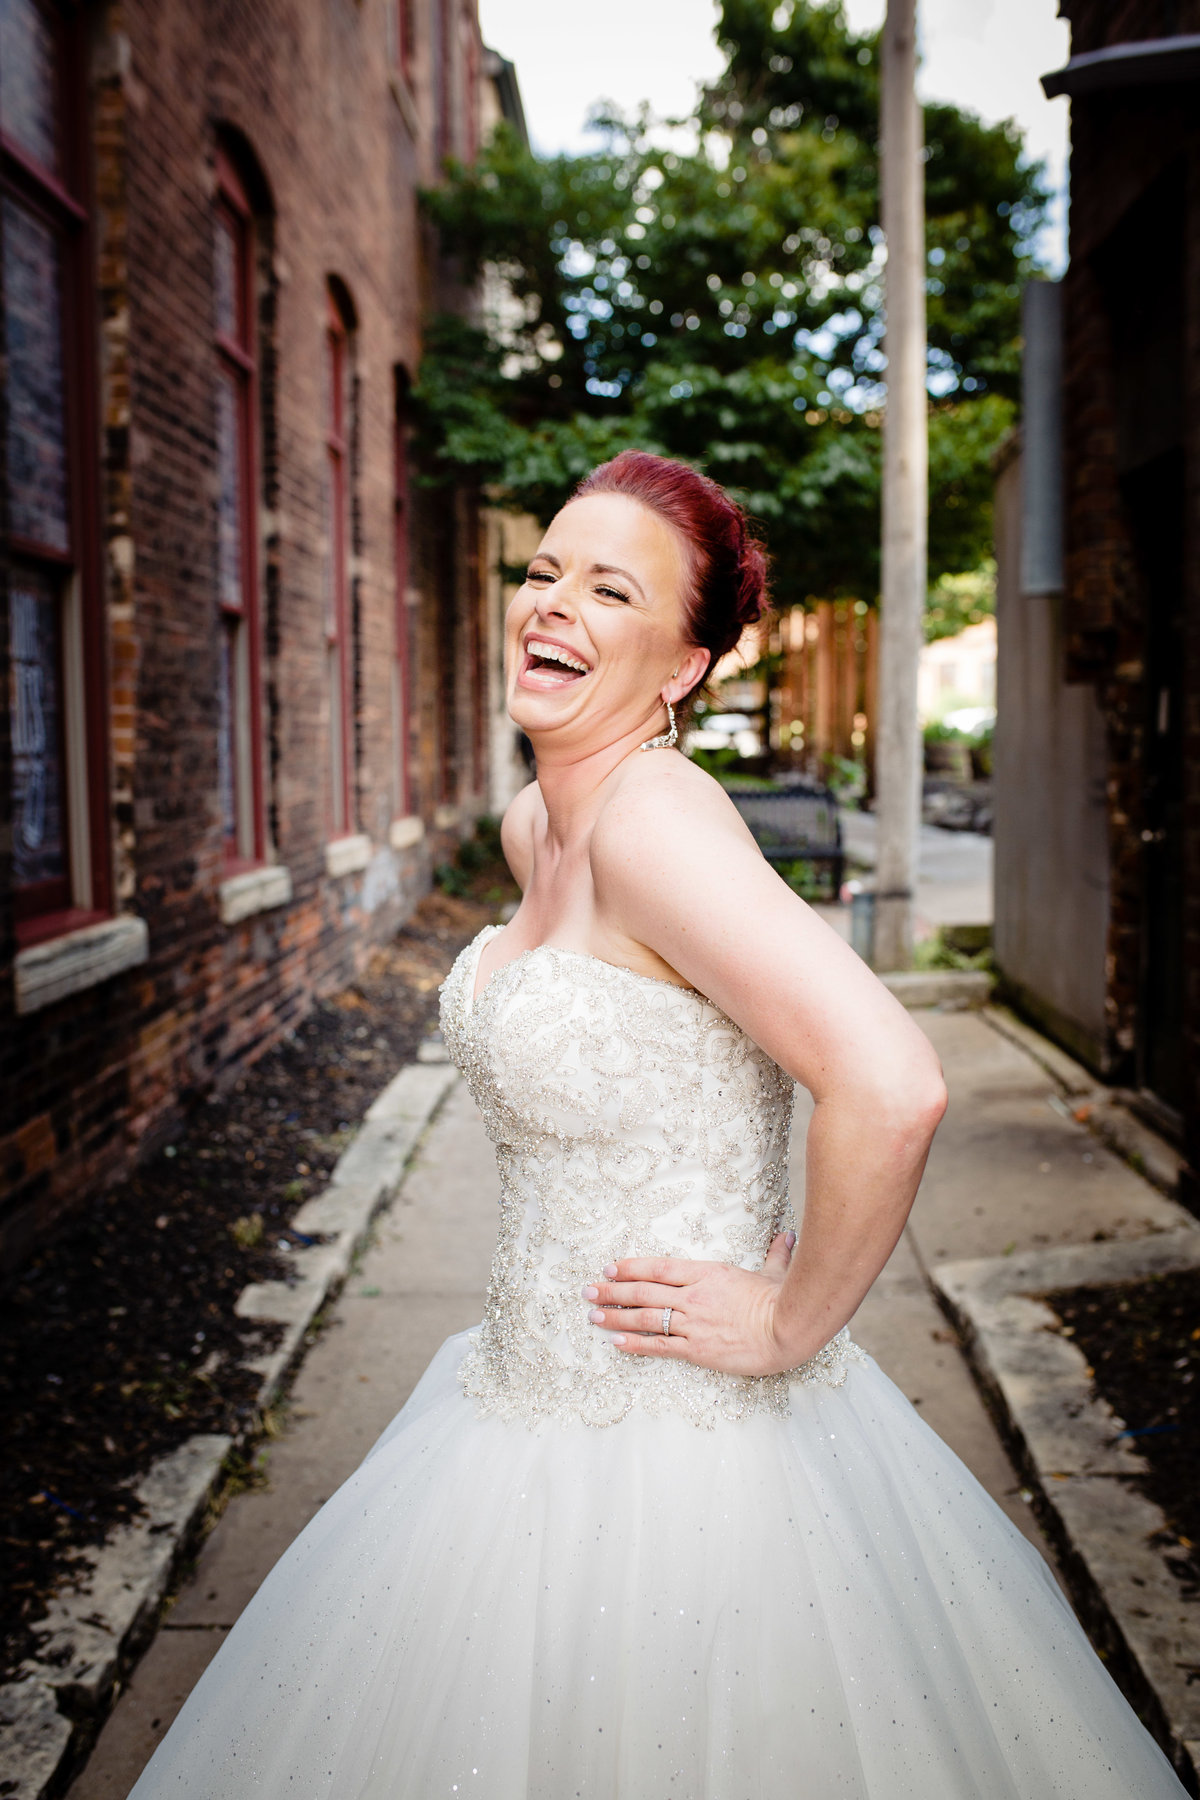 Davenport bride laughing